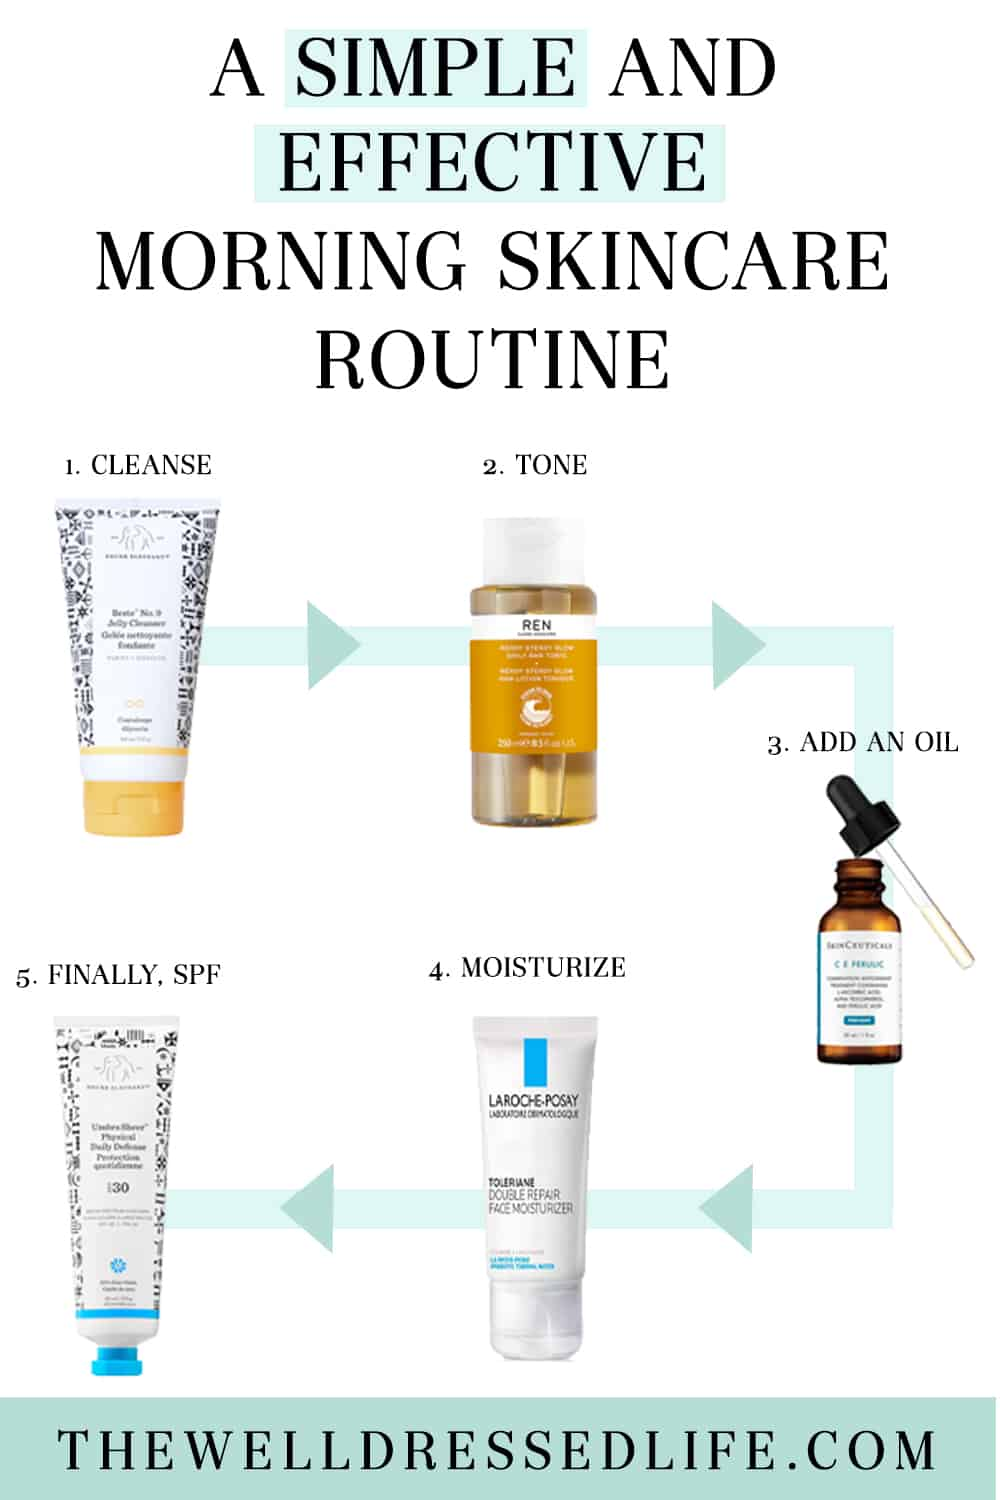 A Simple and Effective Morning Skincare Routine